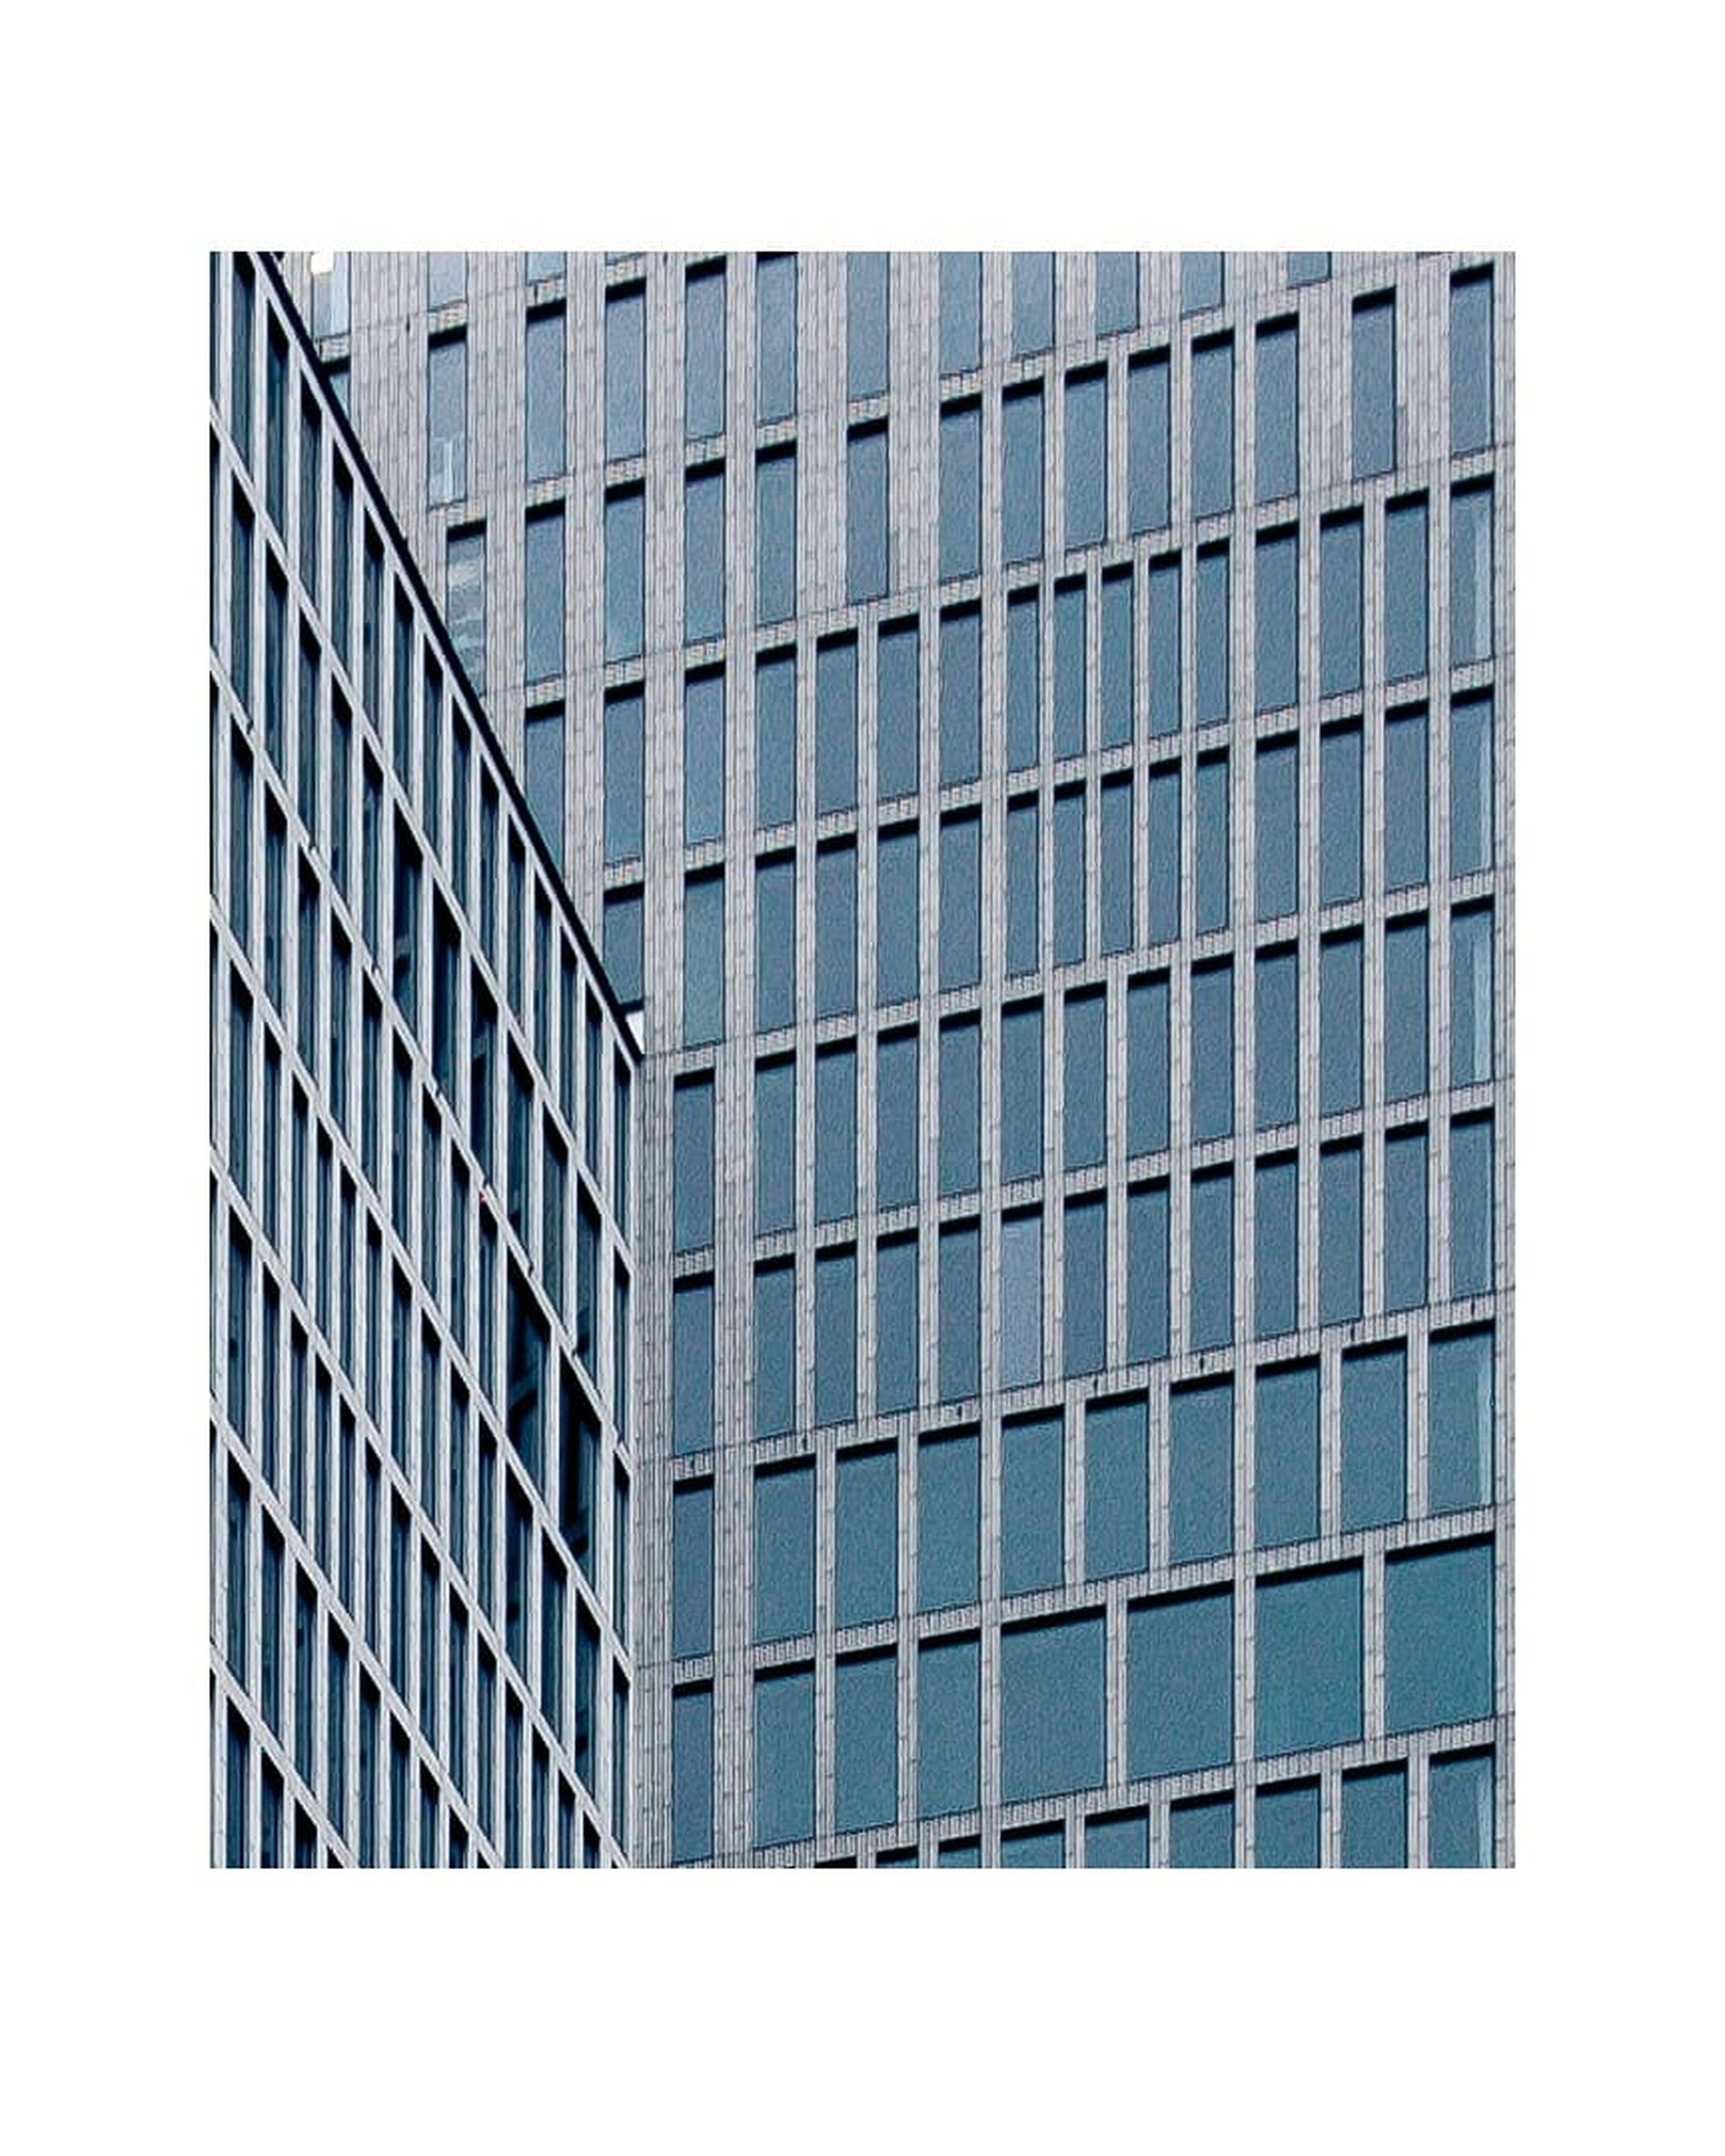 architecture, building exterior, building, built structure, modern, city, office building exterior, no people, window, clear sky, glass - material, pattern, office, sky, tall - high, outdoors, blue, cut out, reflection, control, skyscraper, place, location